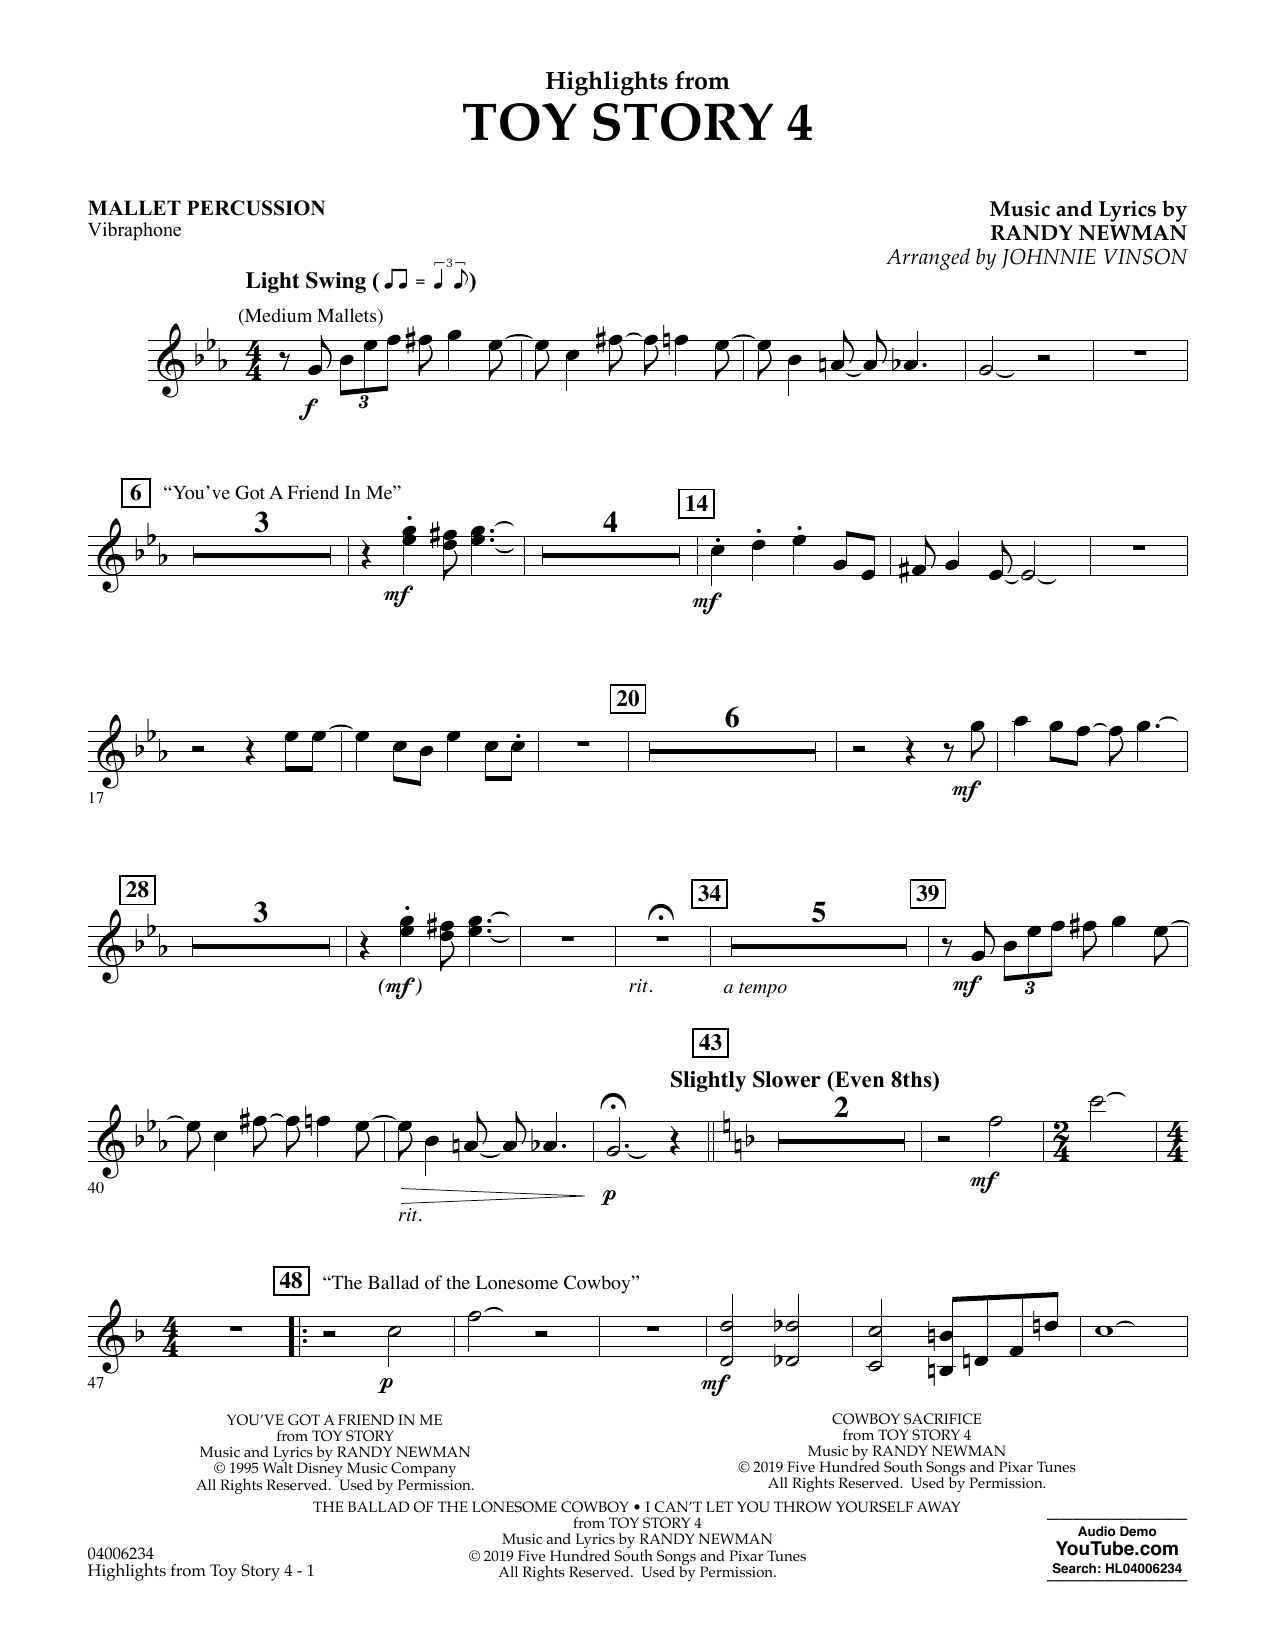 Highlights from Toy Story 4 (arr. Johnnie Vinson) - Mallet Percussion (Concert Band)